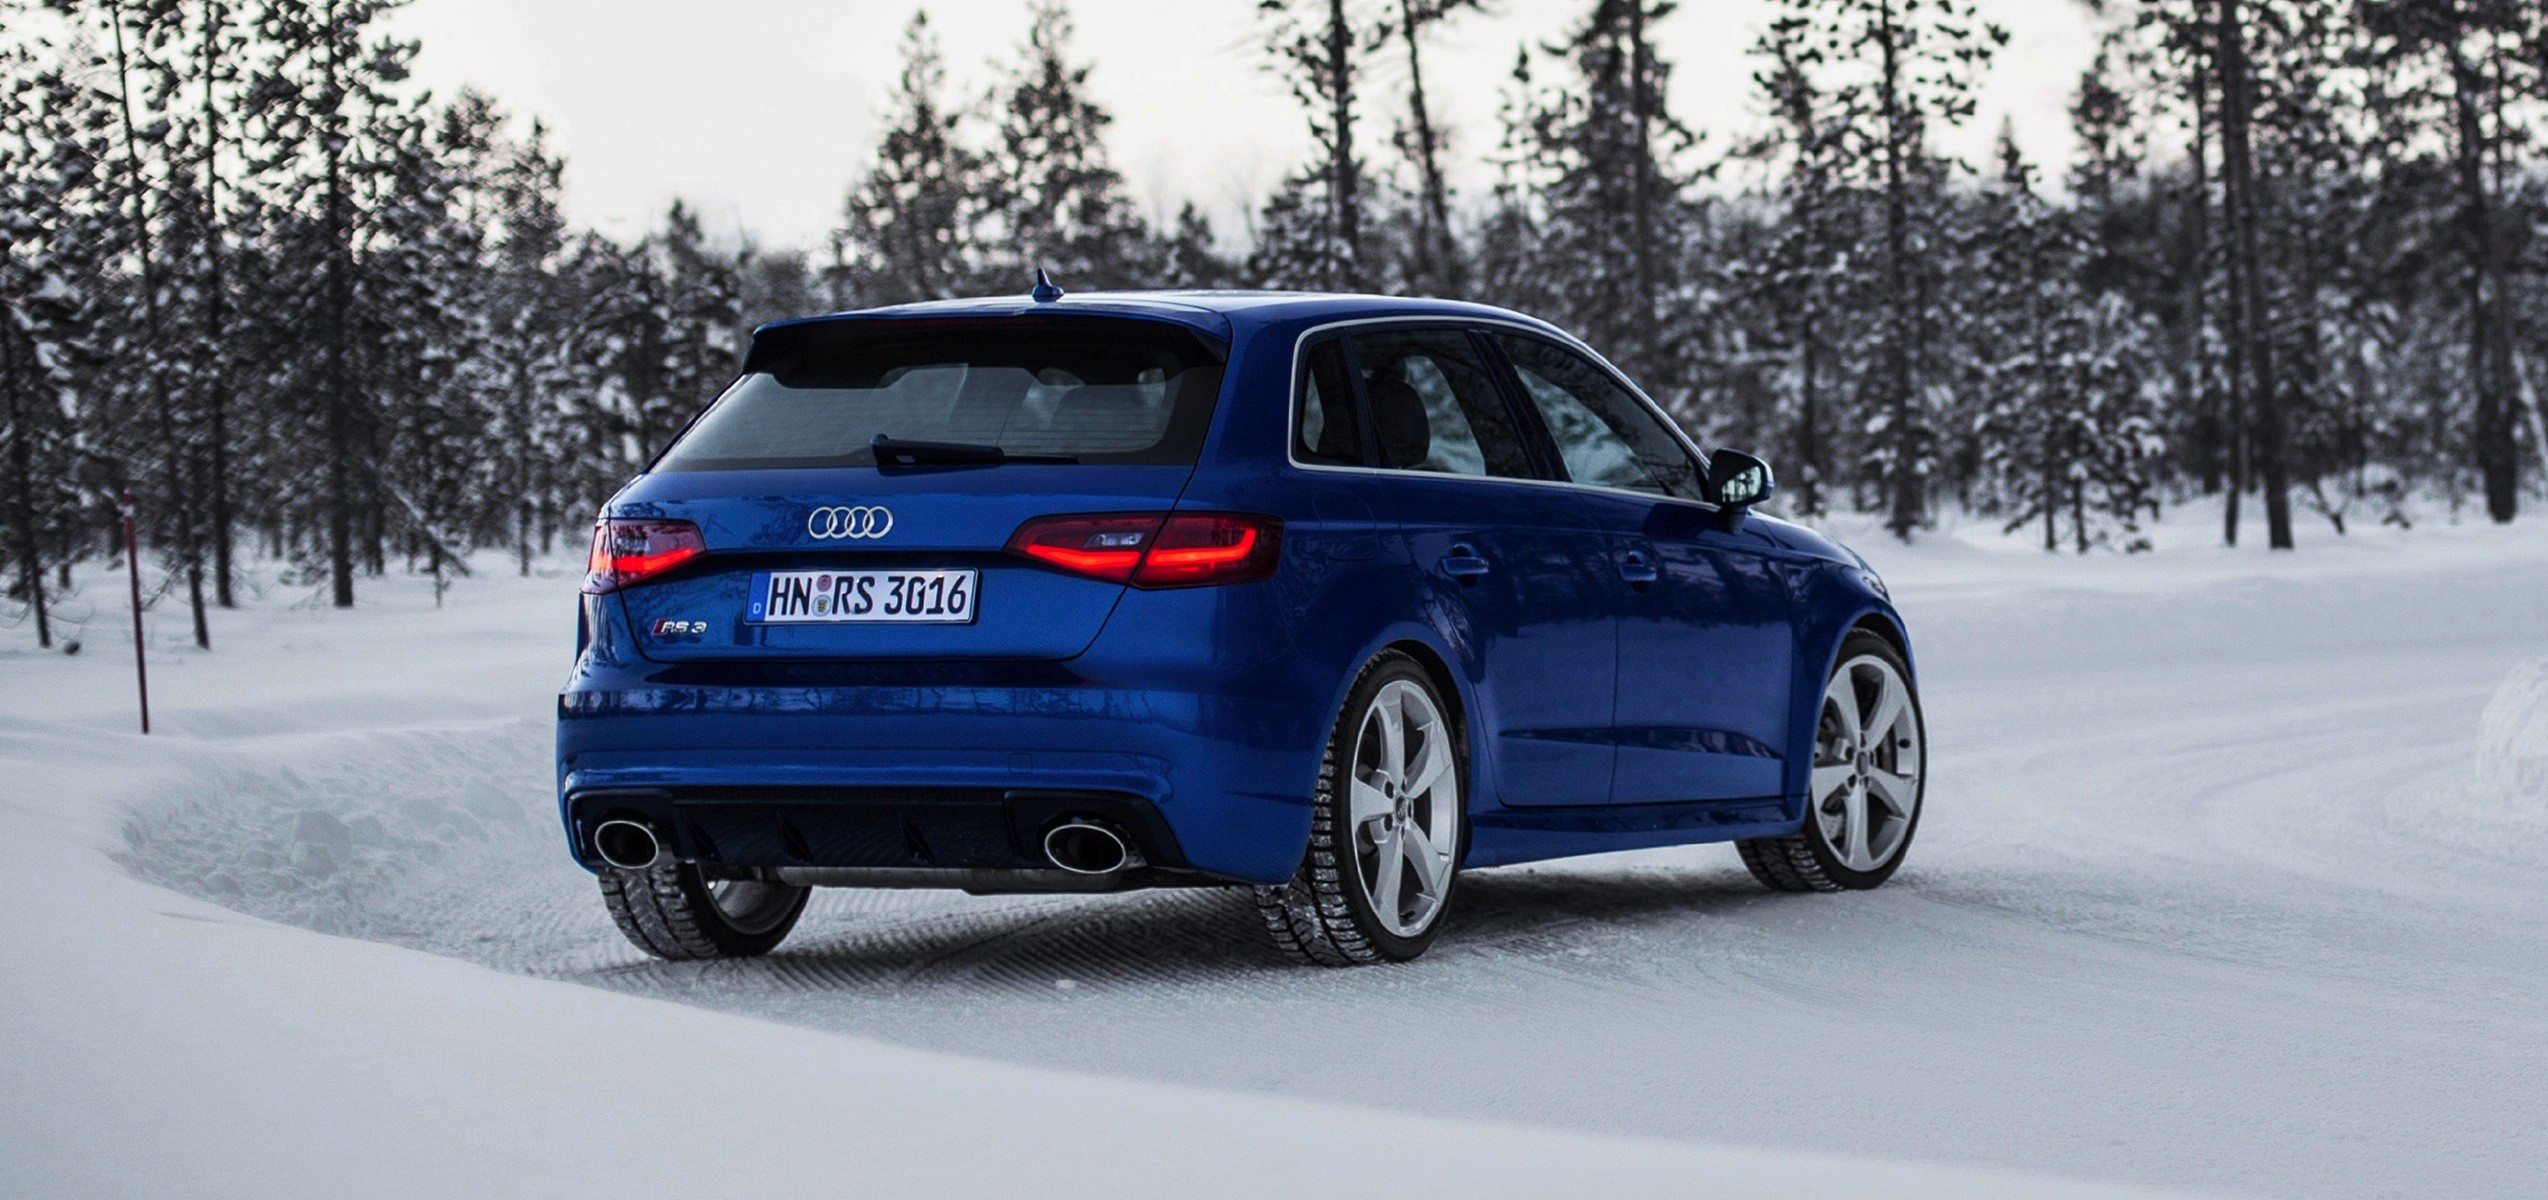 2015 audi rs3 new photos show sepang blue color autoevolution. Black Bedroom Furniture Sets. Home Design Ideas